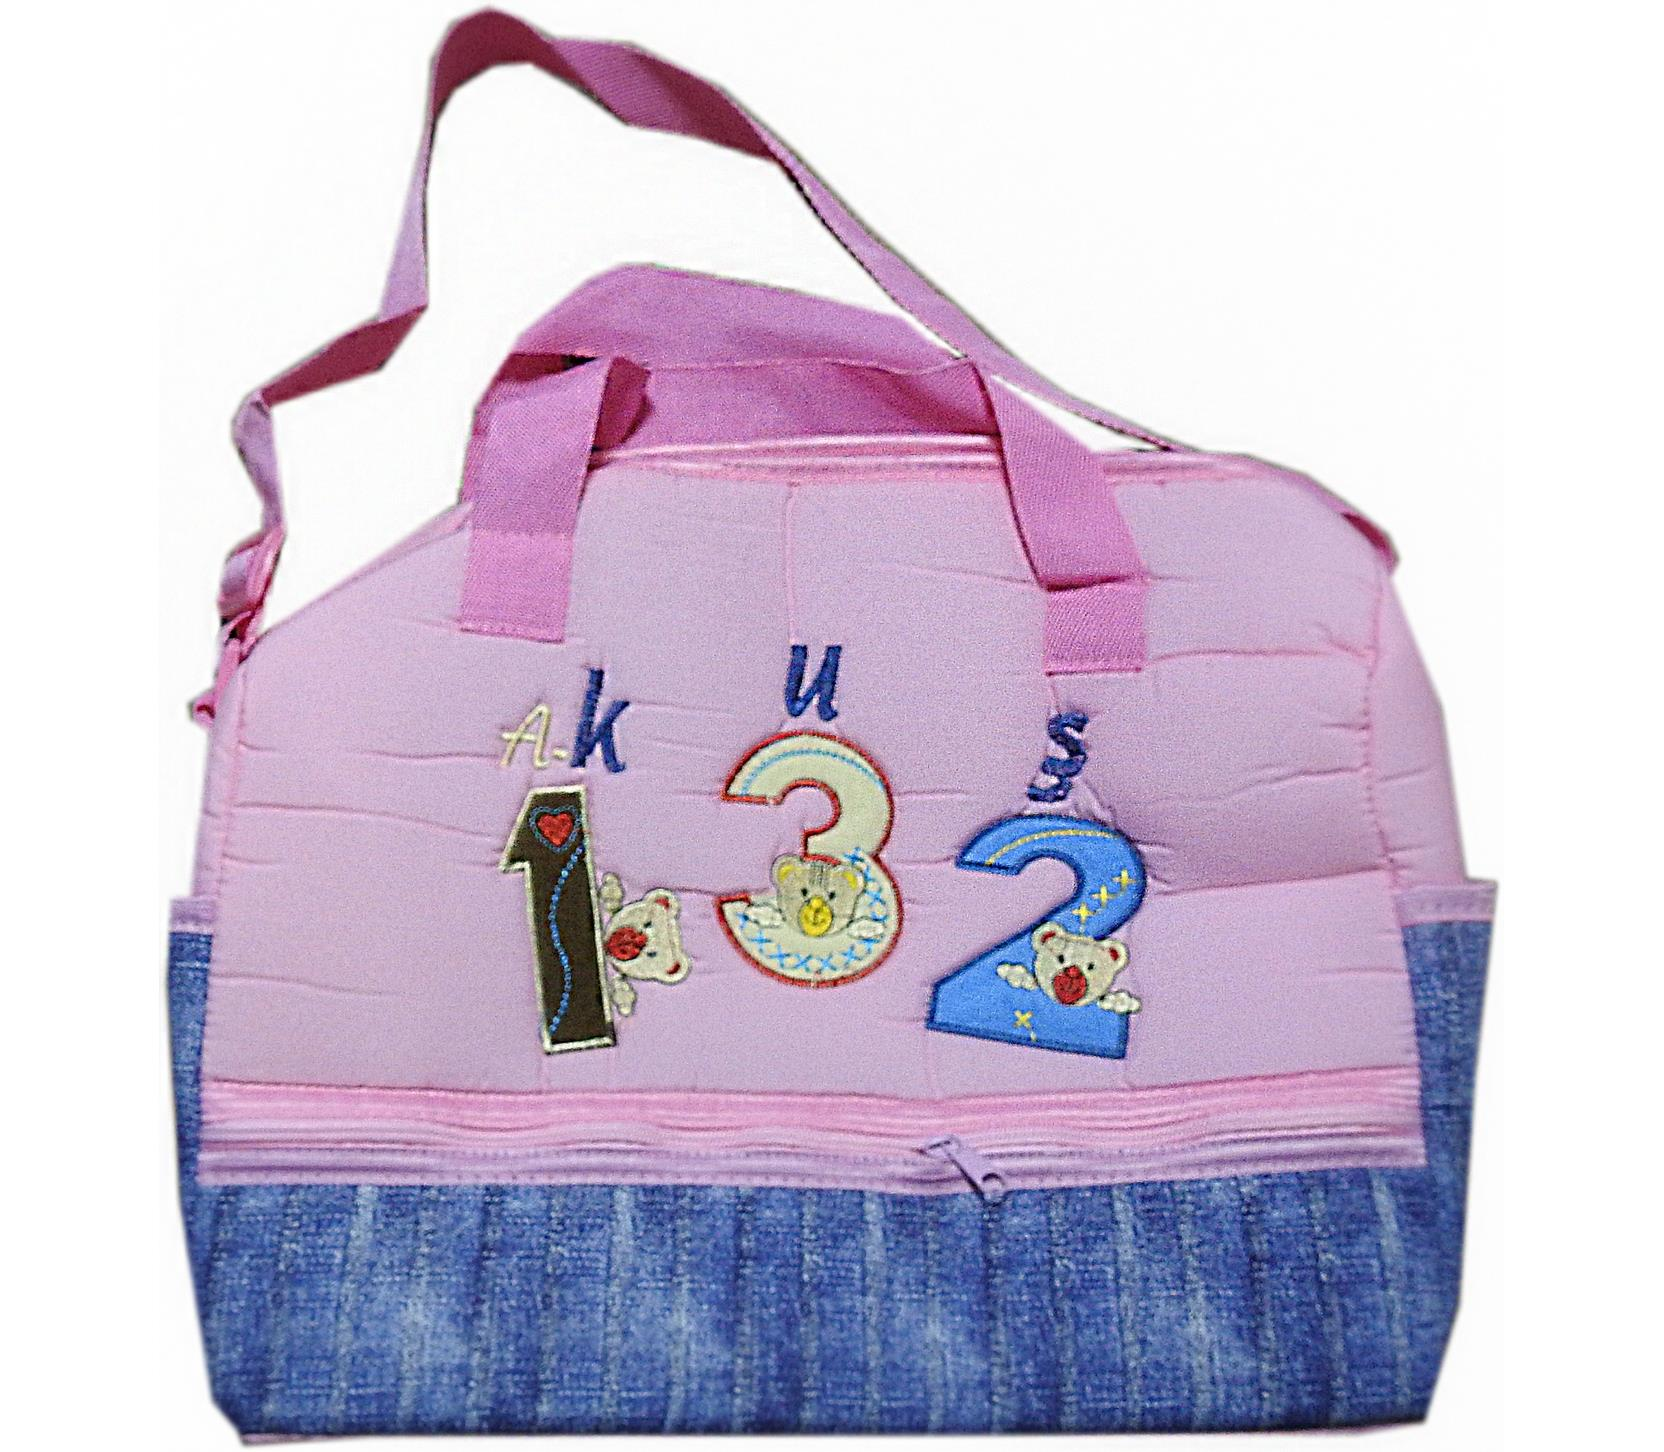 012 Wholesale diaper bag with embroidery 123